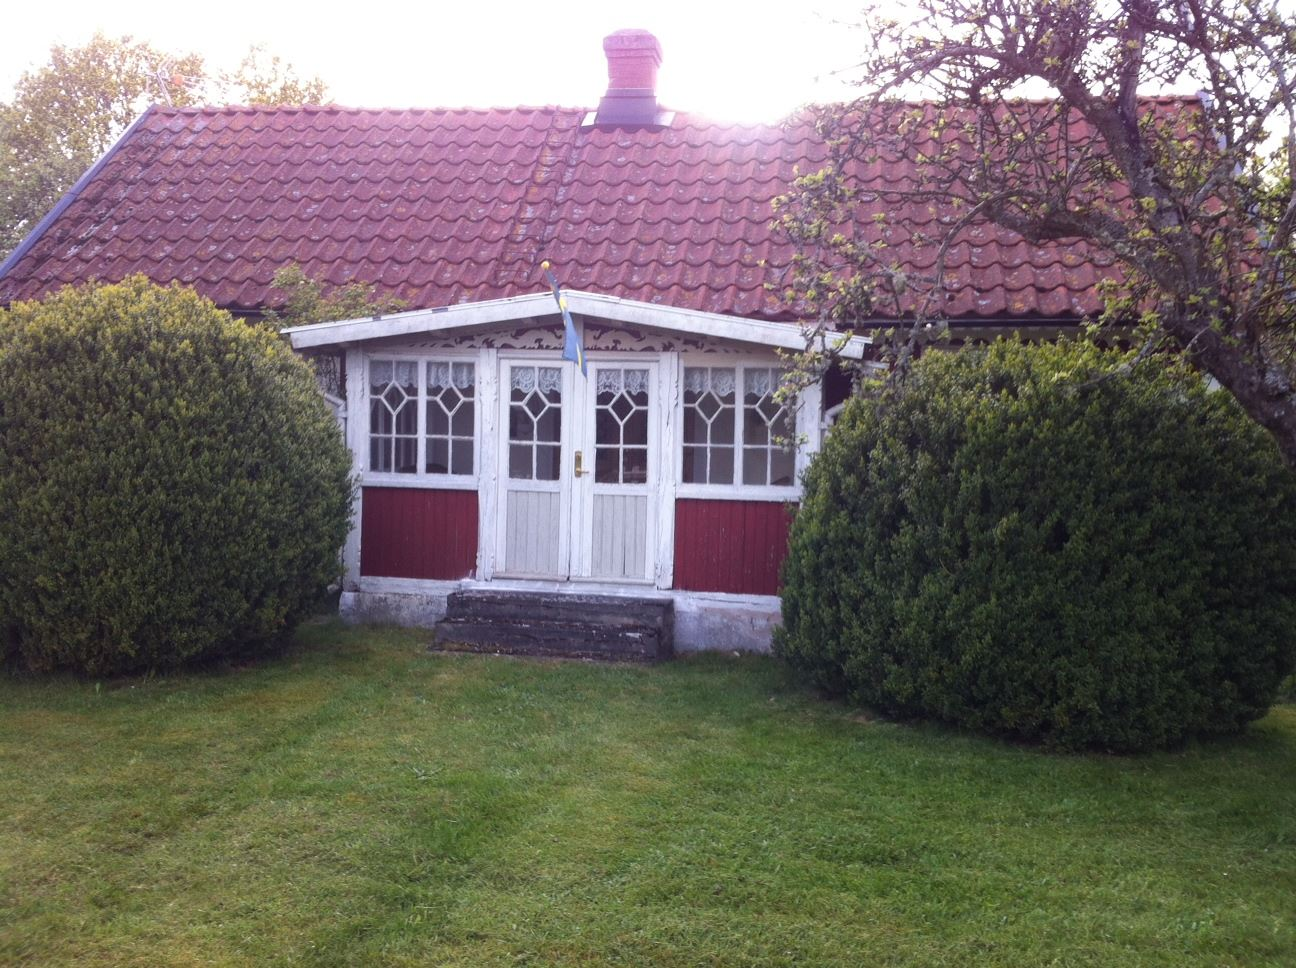 Ragnabovägen, an old, cosy fishing cabin.